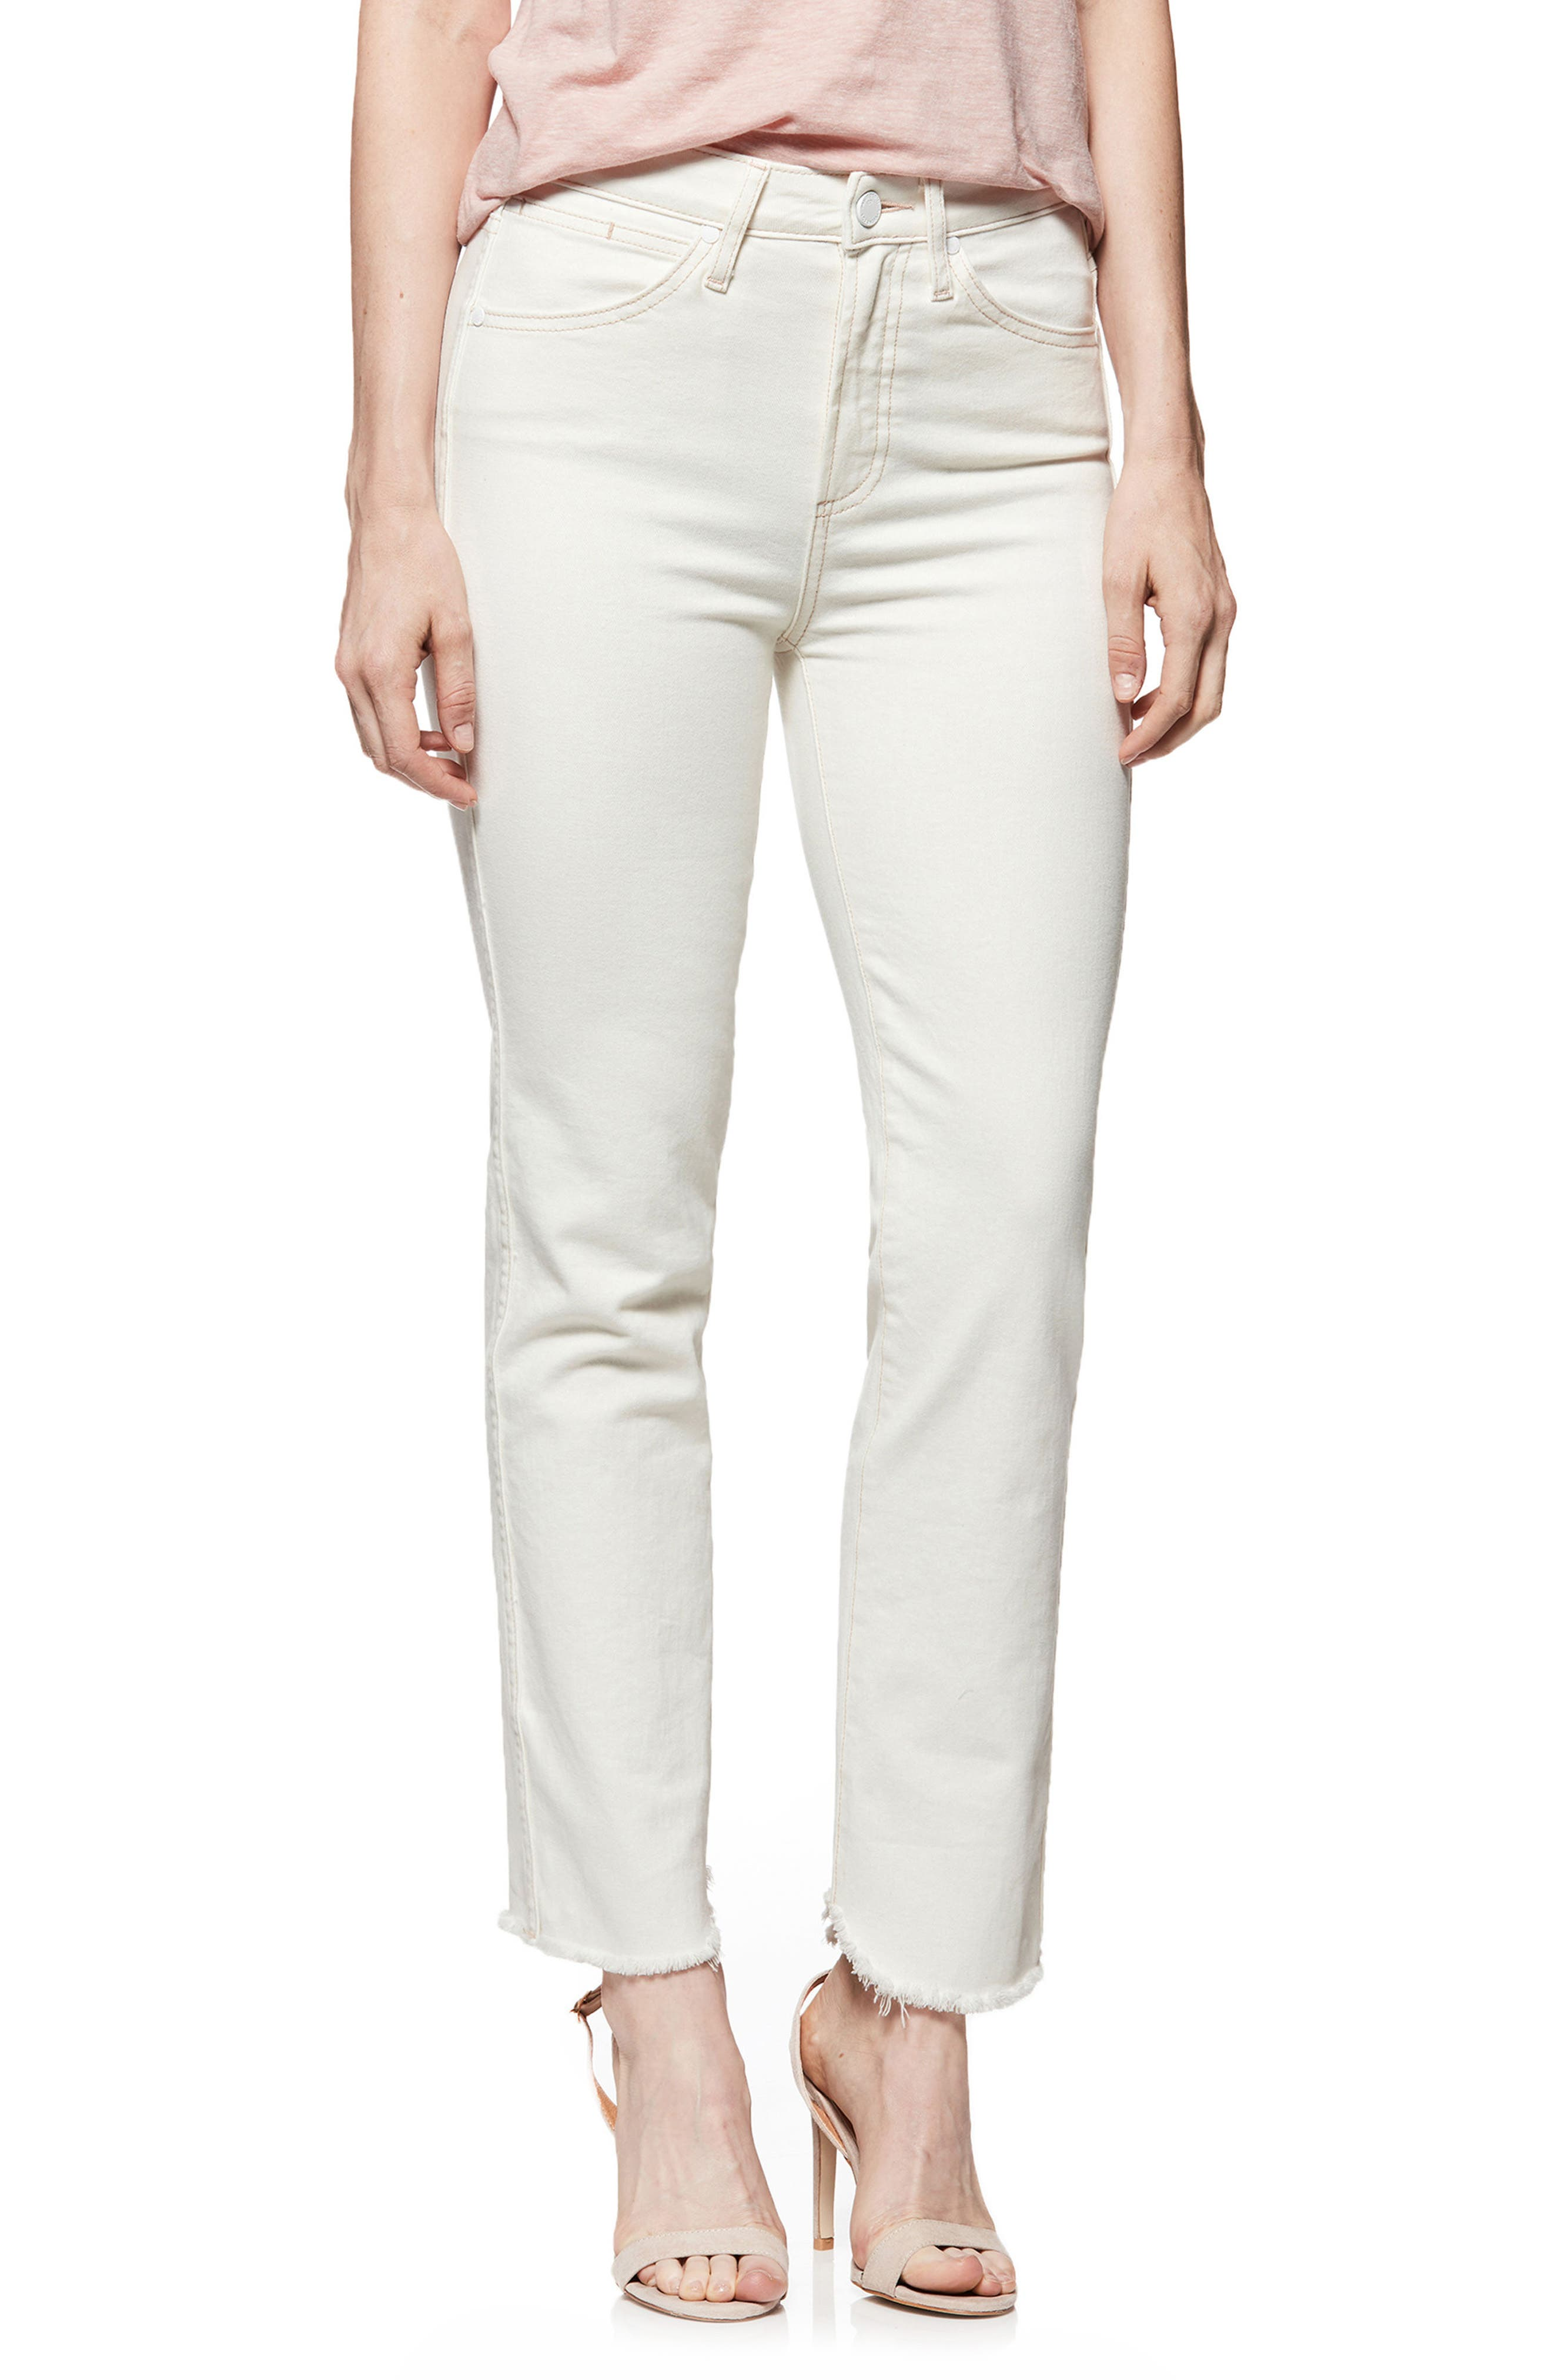 Hoxton High Waist Ankle Straight Jeans,                         Main,                         color, Cream/ Pink